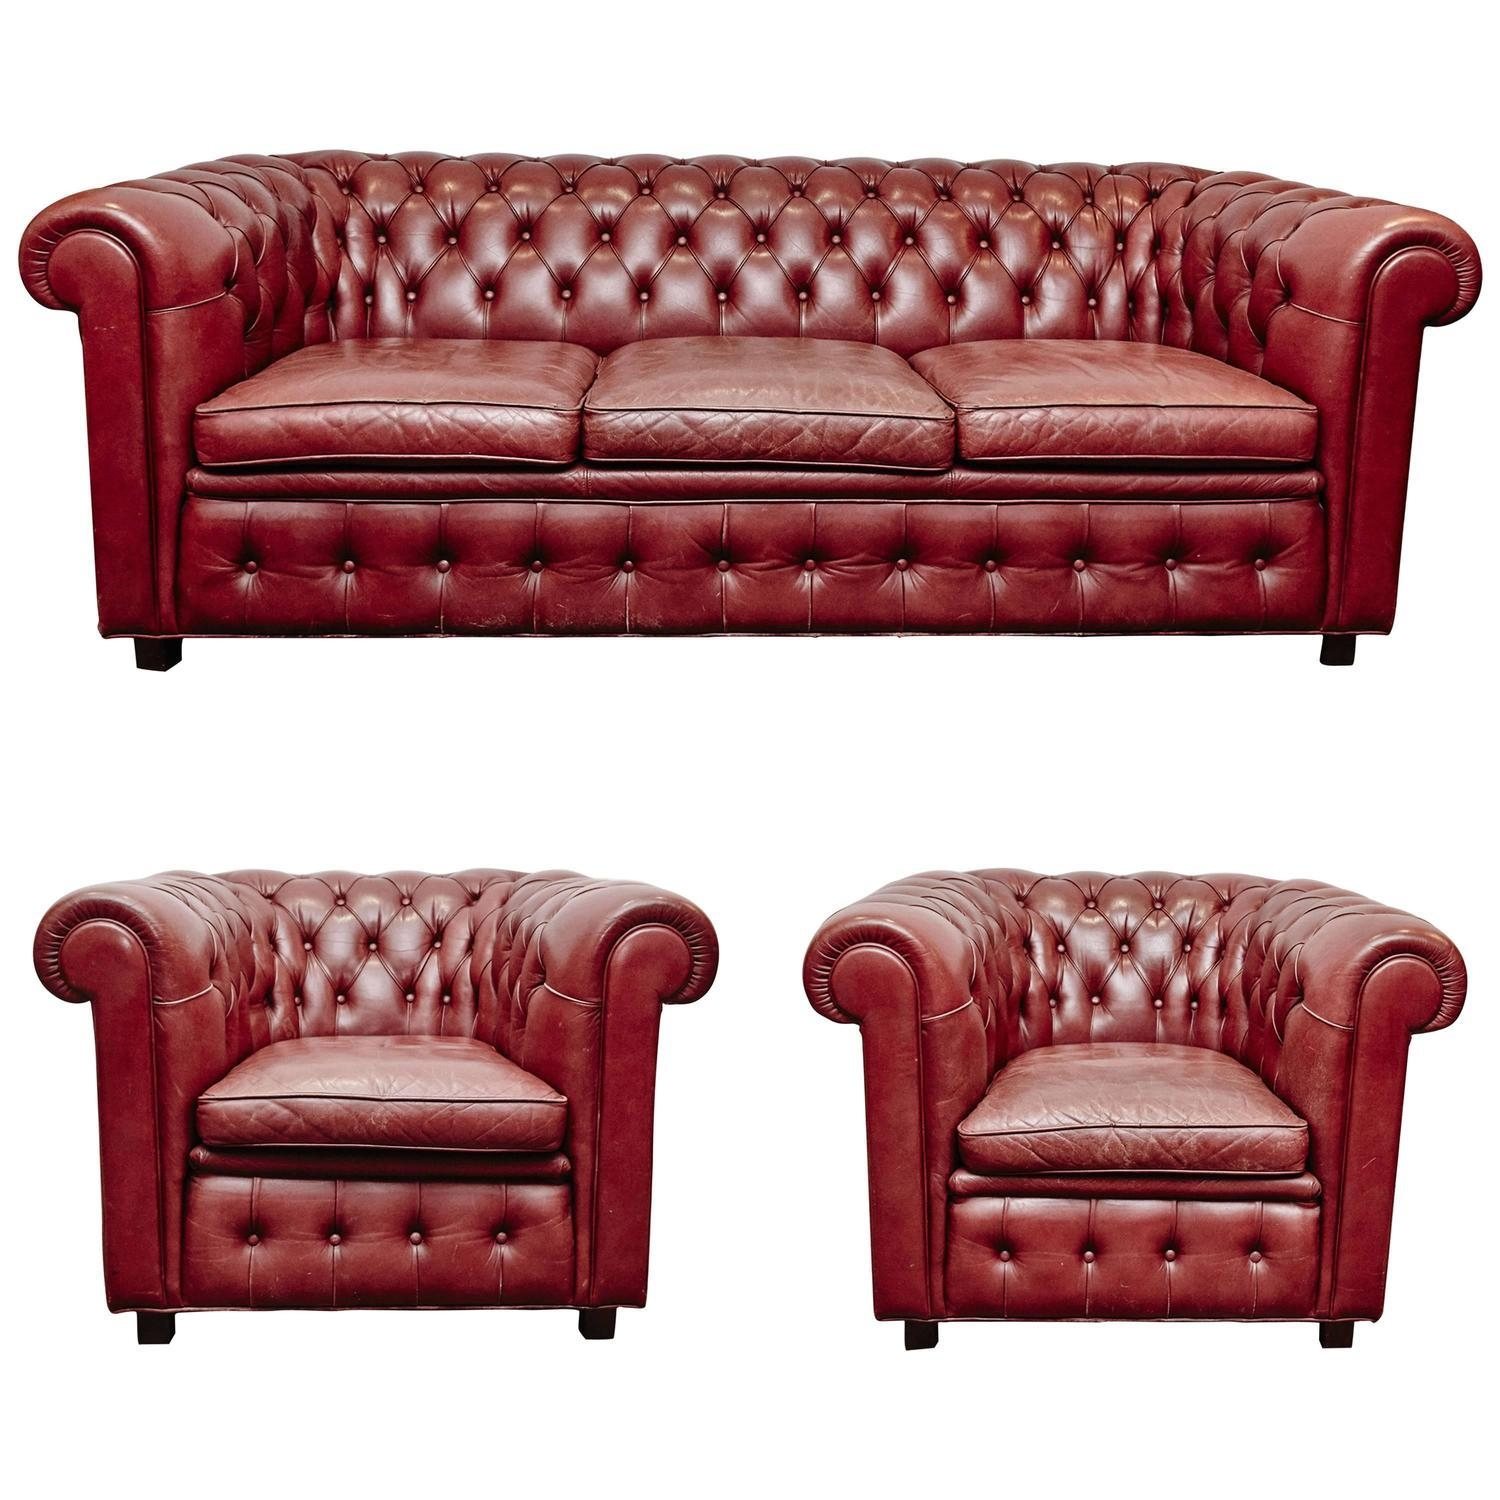 Leather Chesterfield Sofa And Pair Of Armchairsarne Norell At With Red Chesterfield Chairs (Image 14 of 20)